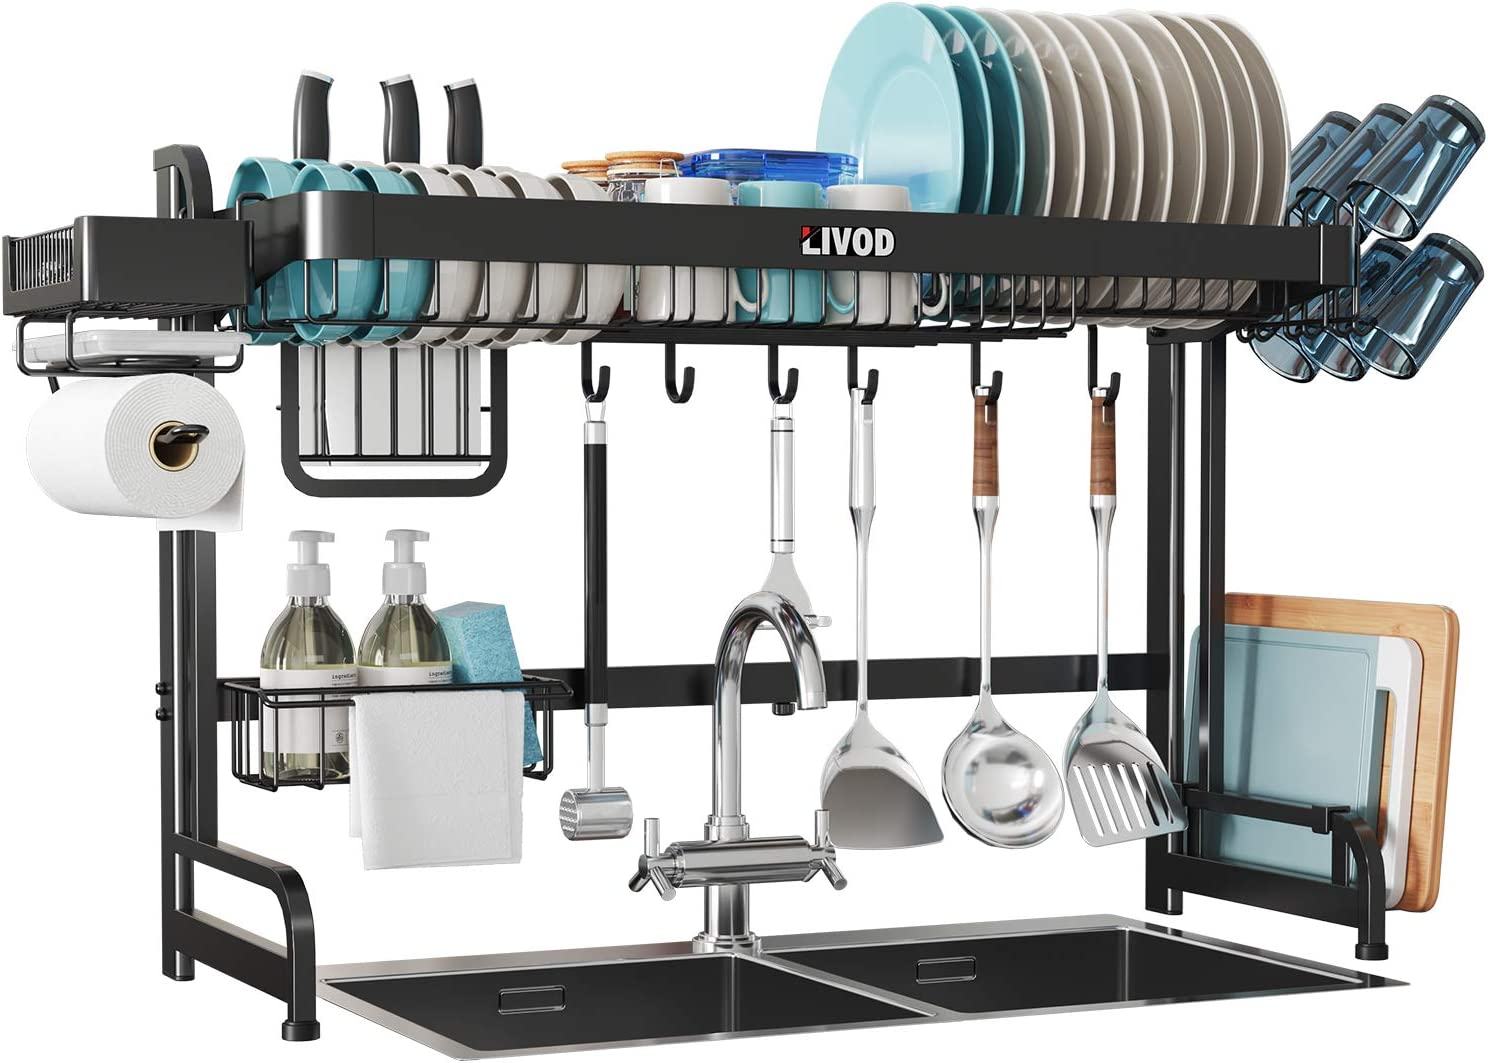 LIVOD Over the Sink Dish Drying Rack,Expandable Large Dish Rack and Drainboard Set,Stainless Steel Kitchen Sink Organizer Rack with Utensil and Paper Towel Holder (24.4≦Sink Size≦36.6 Inch) (Black)